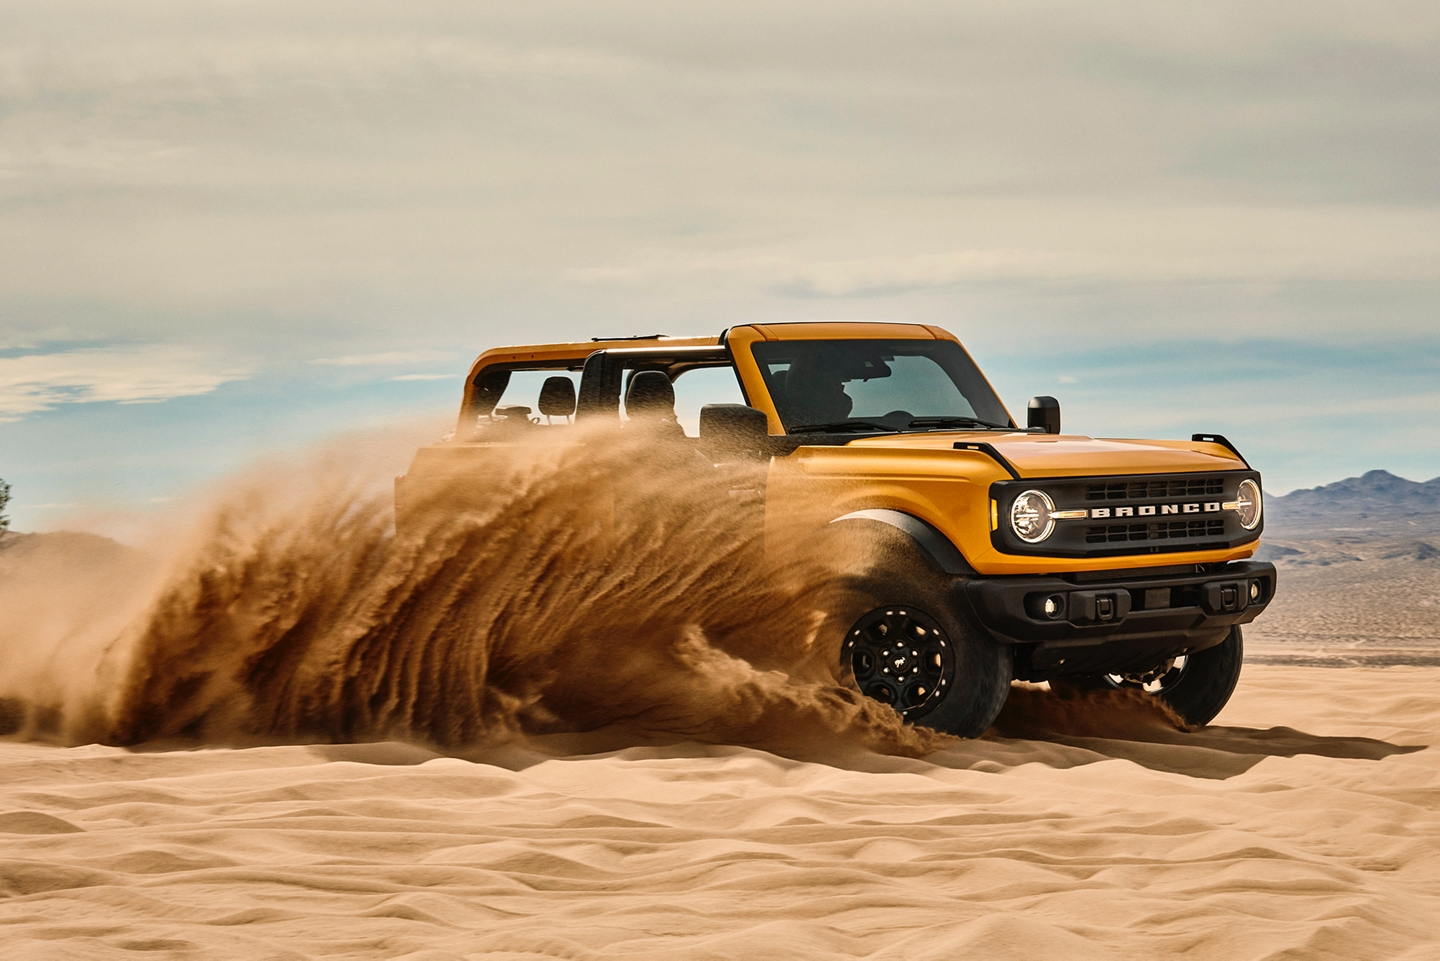 2021 Ford Bronco being driven through the sand dunes